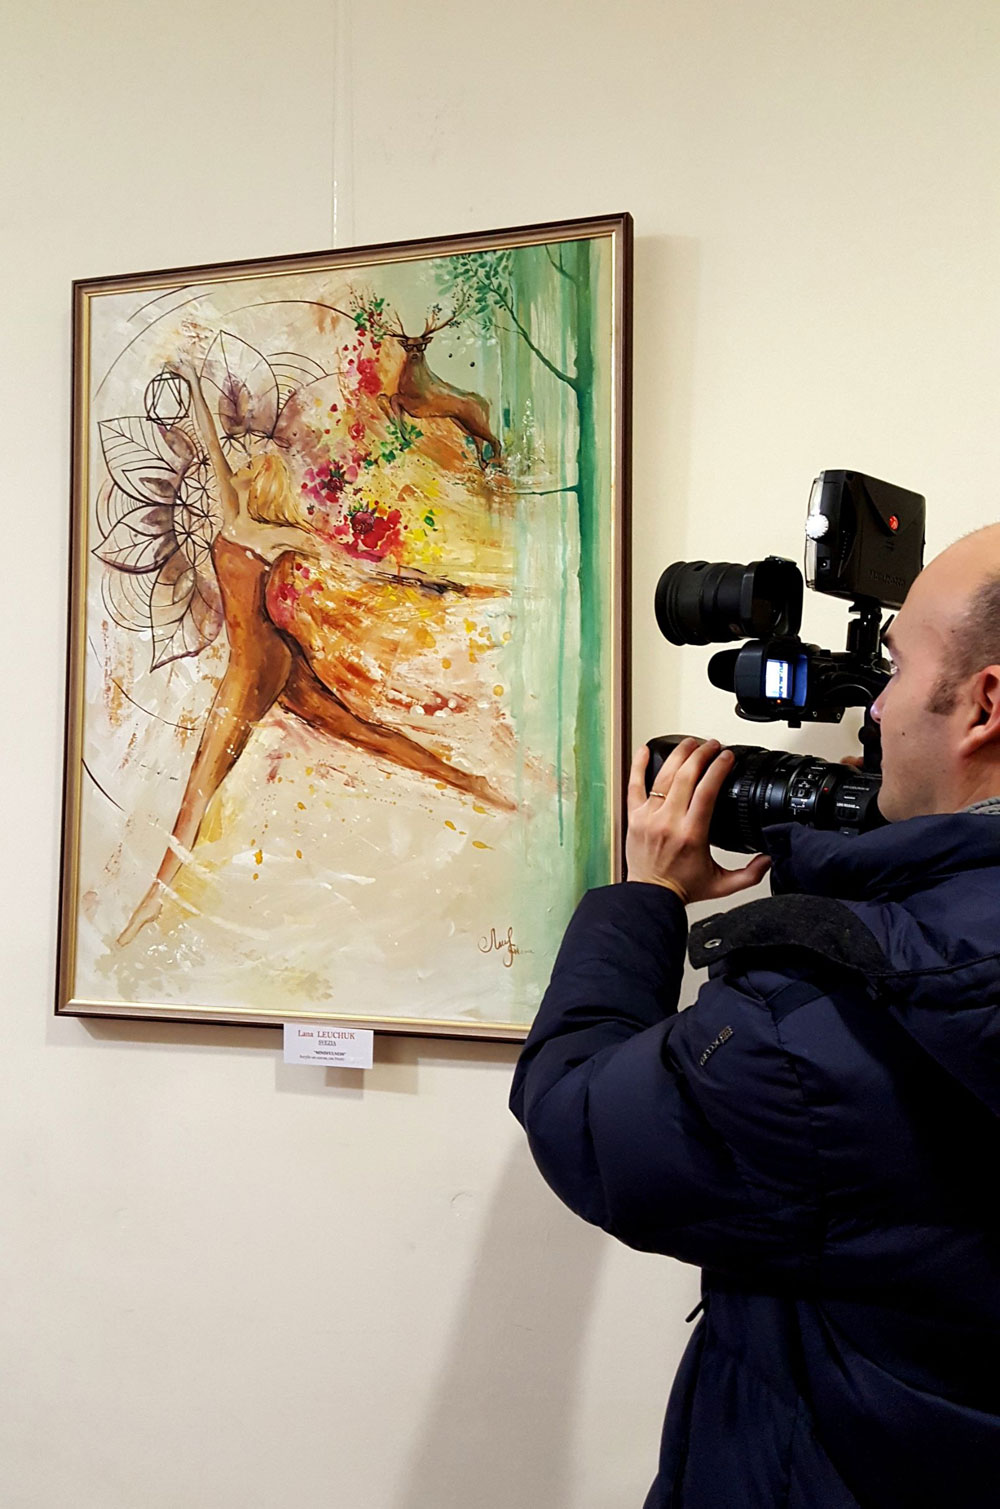 art-event-rome-tv-shooting-artwork-by-lana-leuchuk